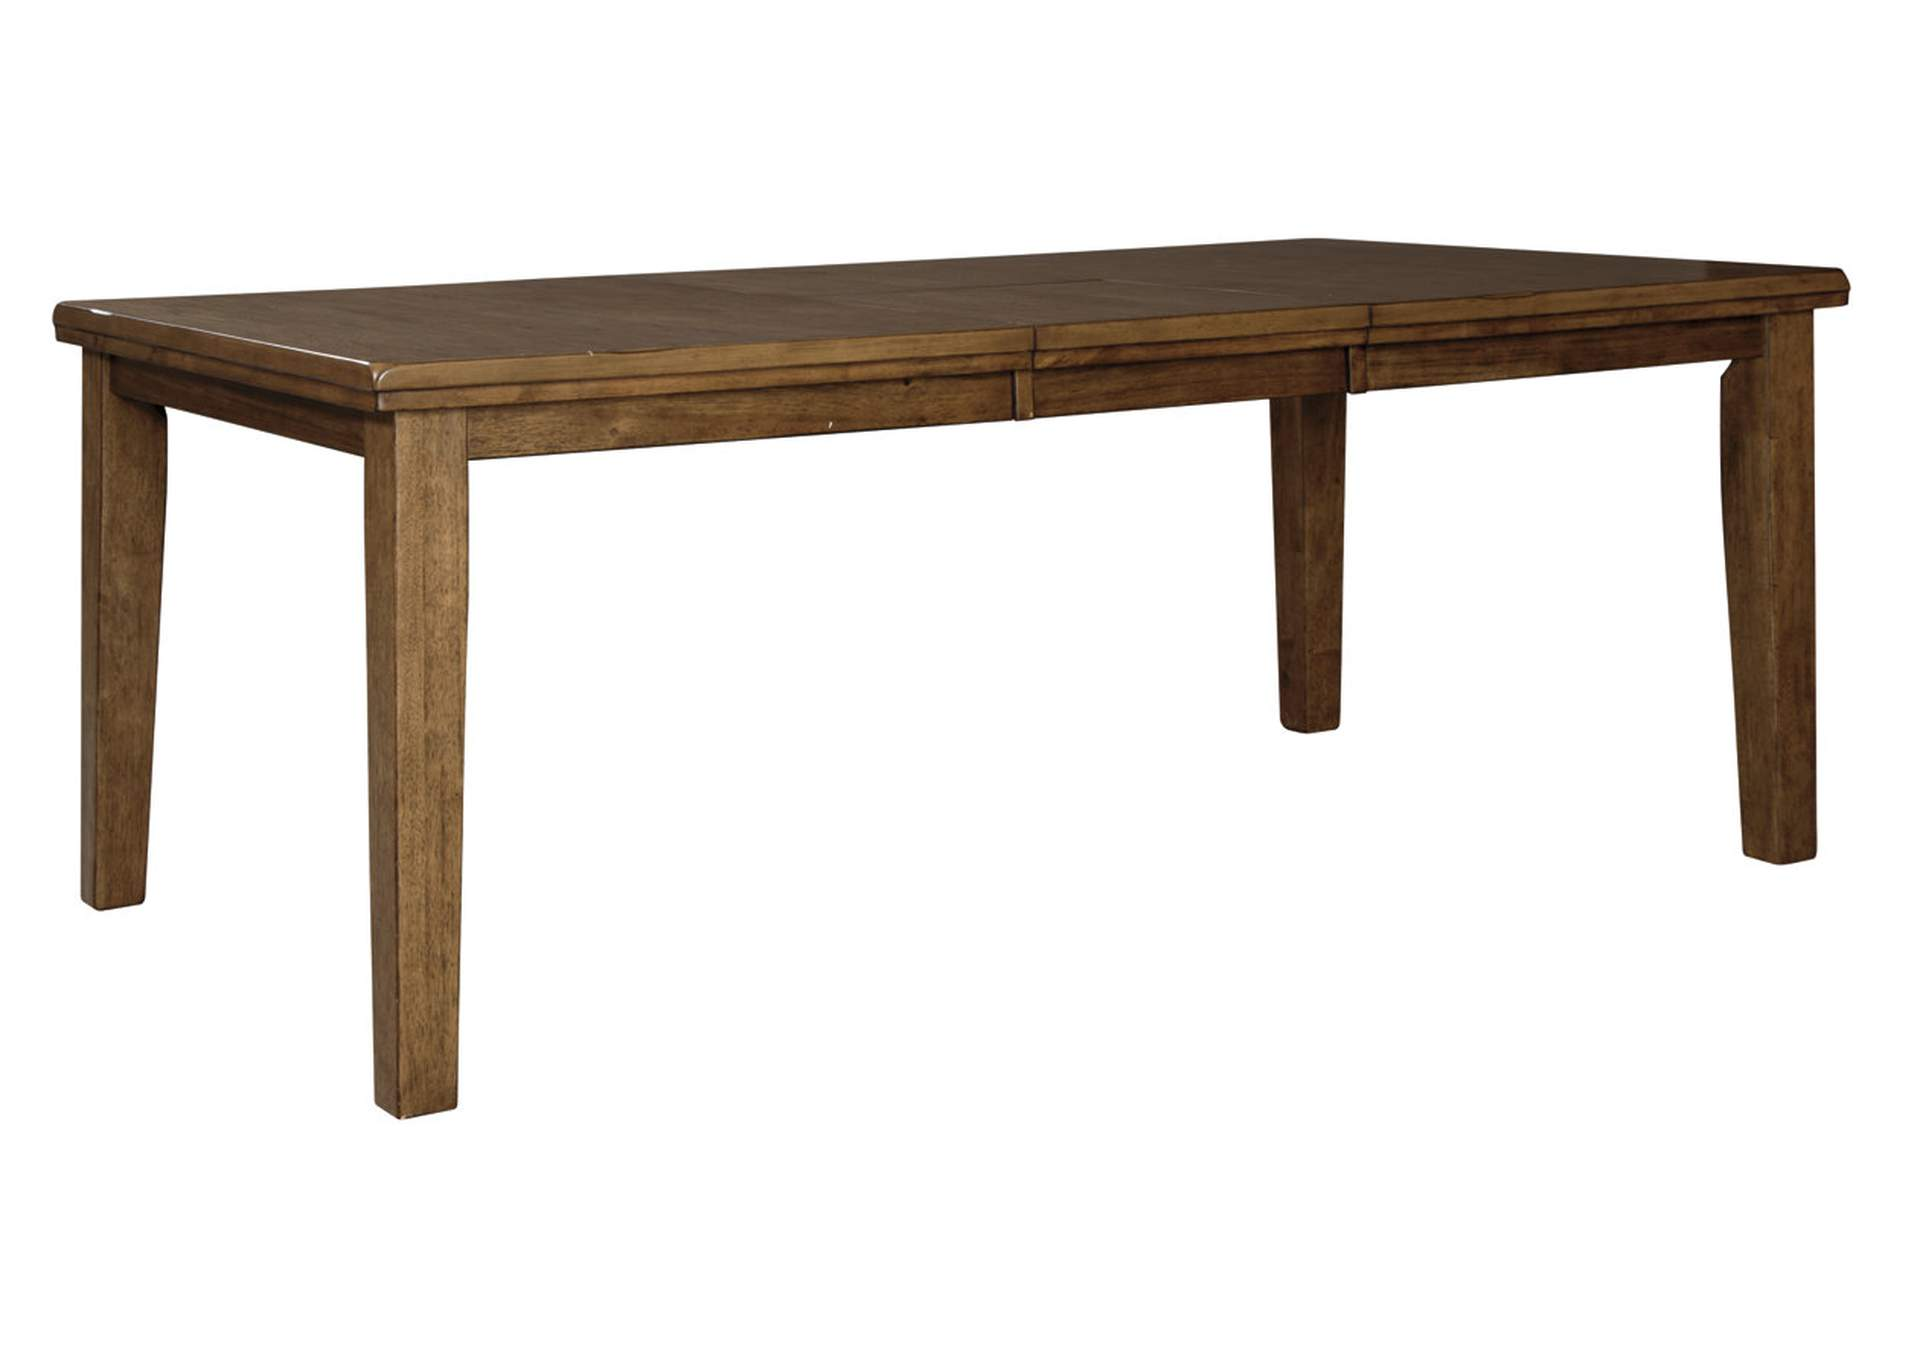 Flaybern Dining Room Table,Benchcraft